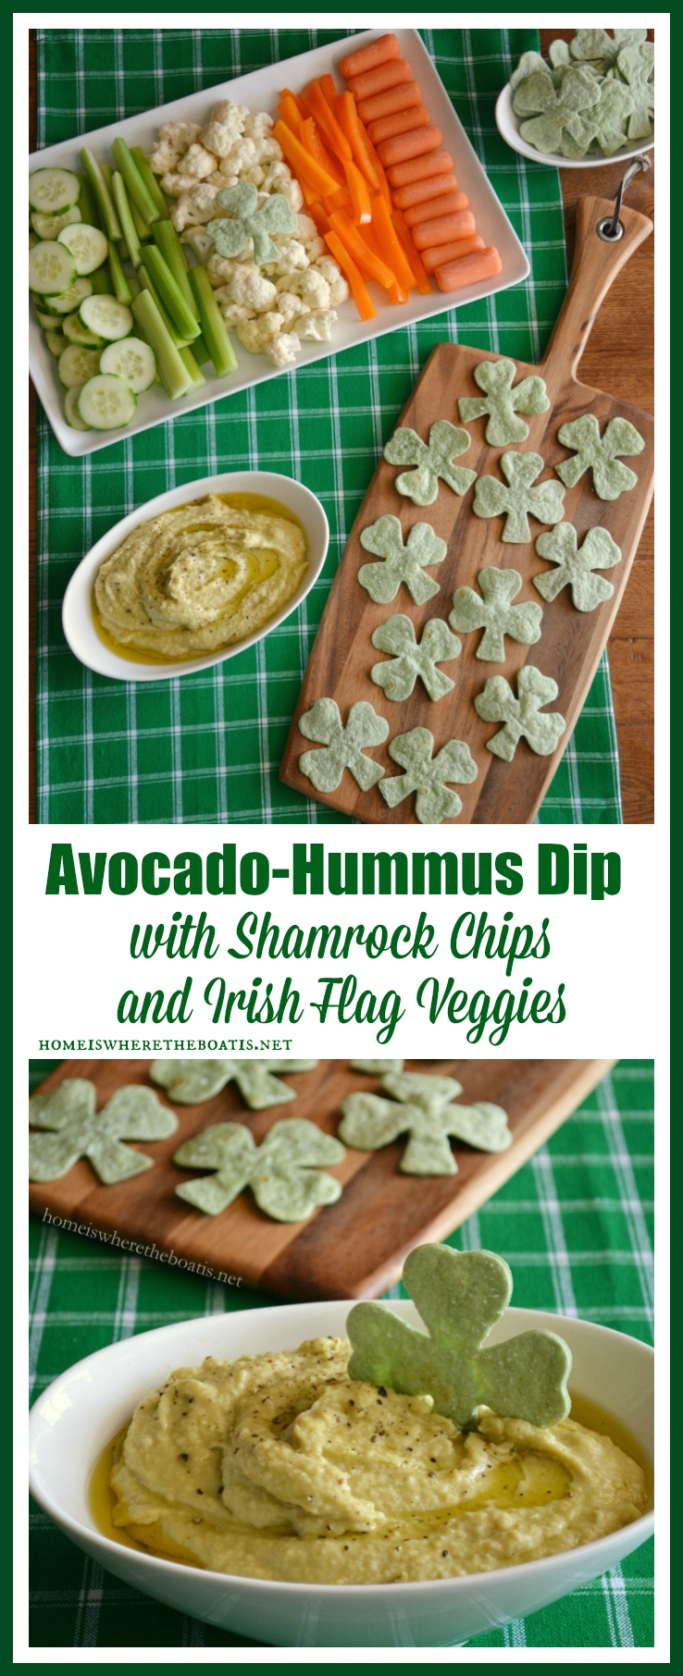 Avocado-Hummus Dip with Shamrock Chips and Irish Flag Veggies